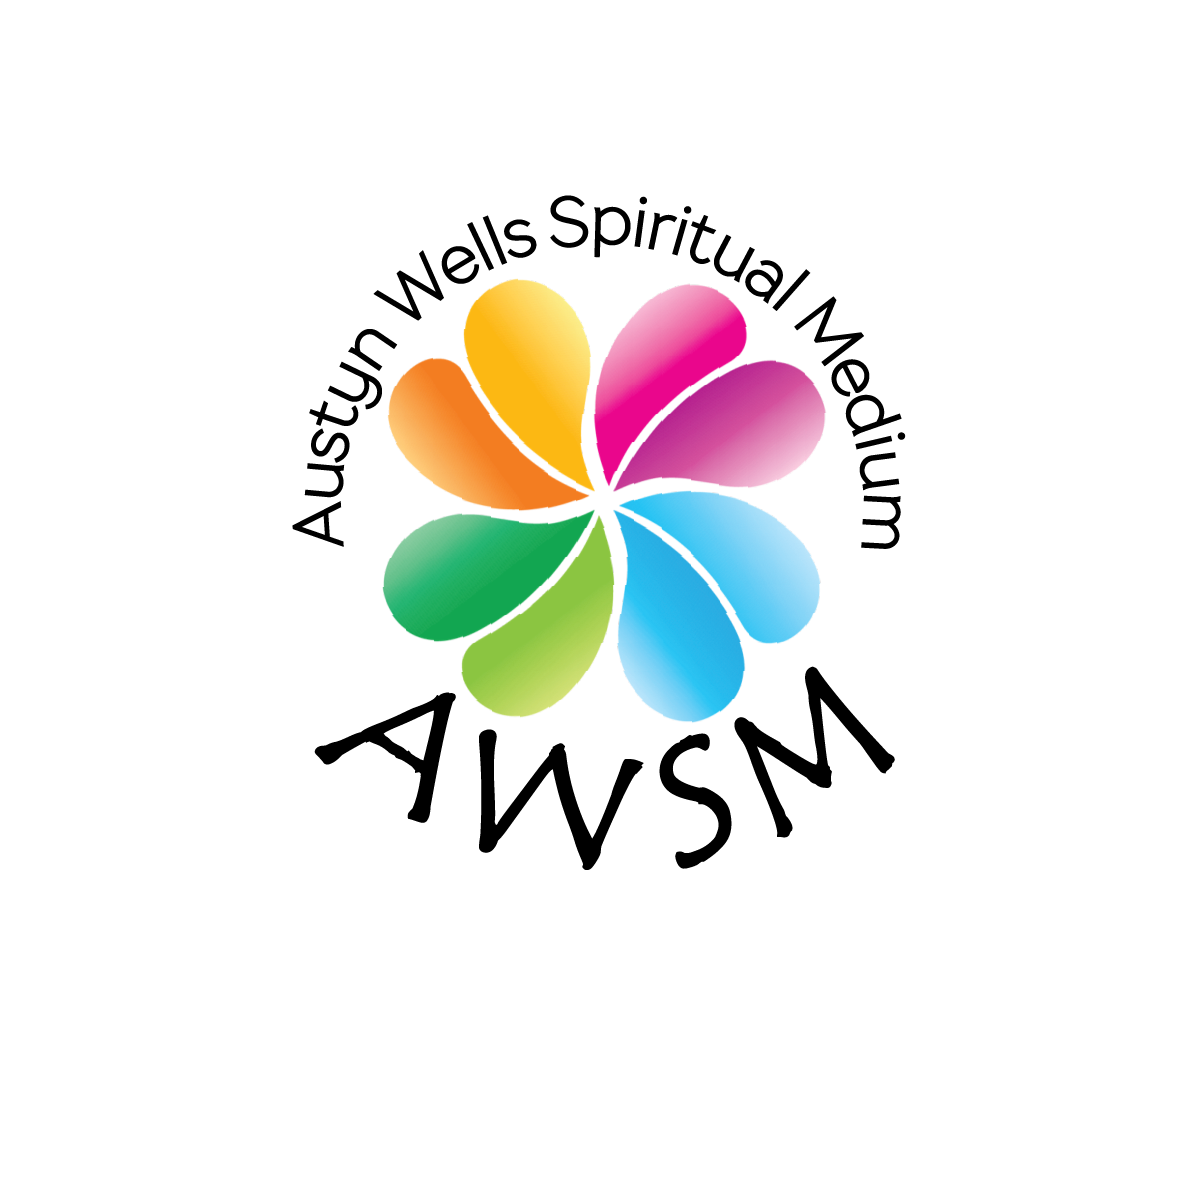 AWSM Mediumship Sitting For Two